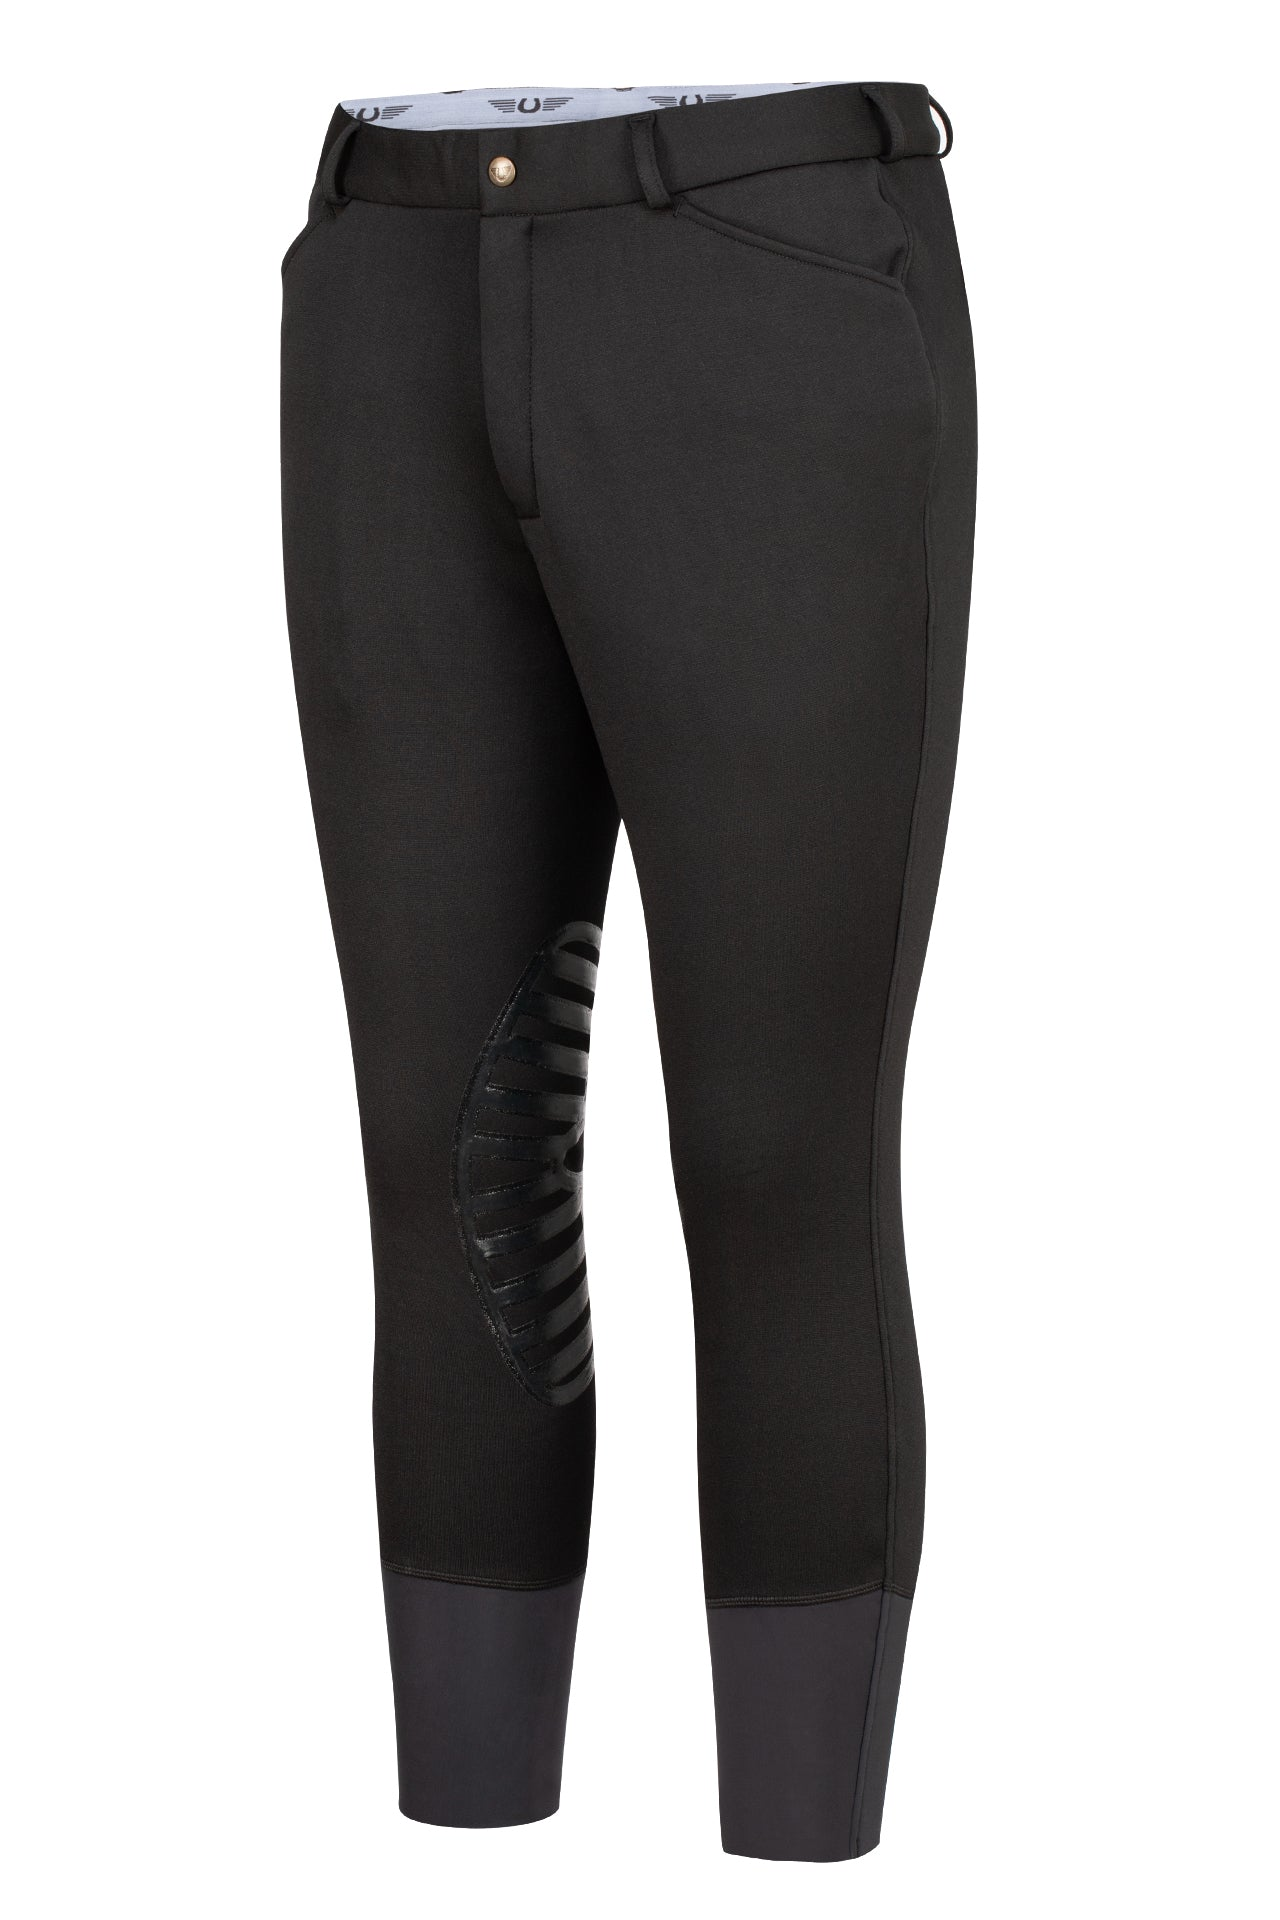 TuffRider Men's Patrol Unifleece Breeches - Breeches.com